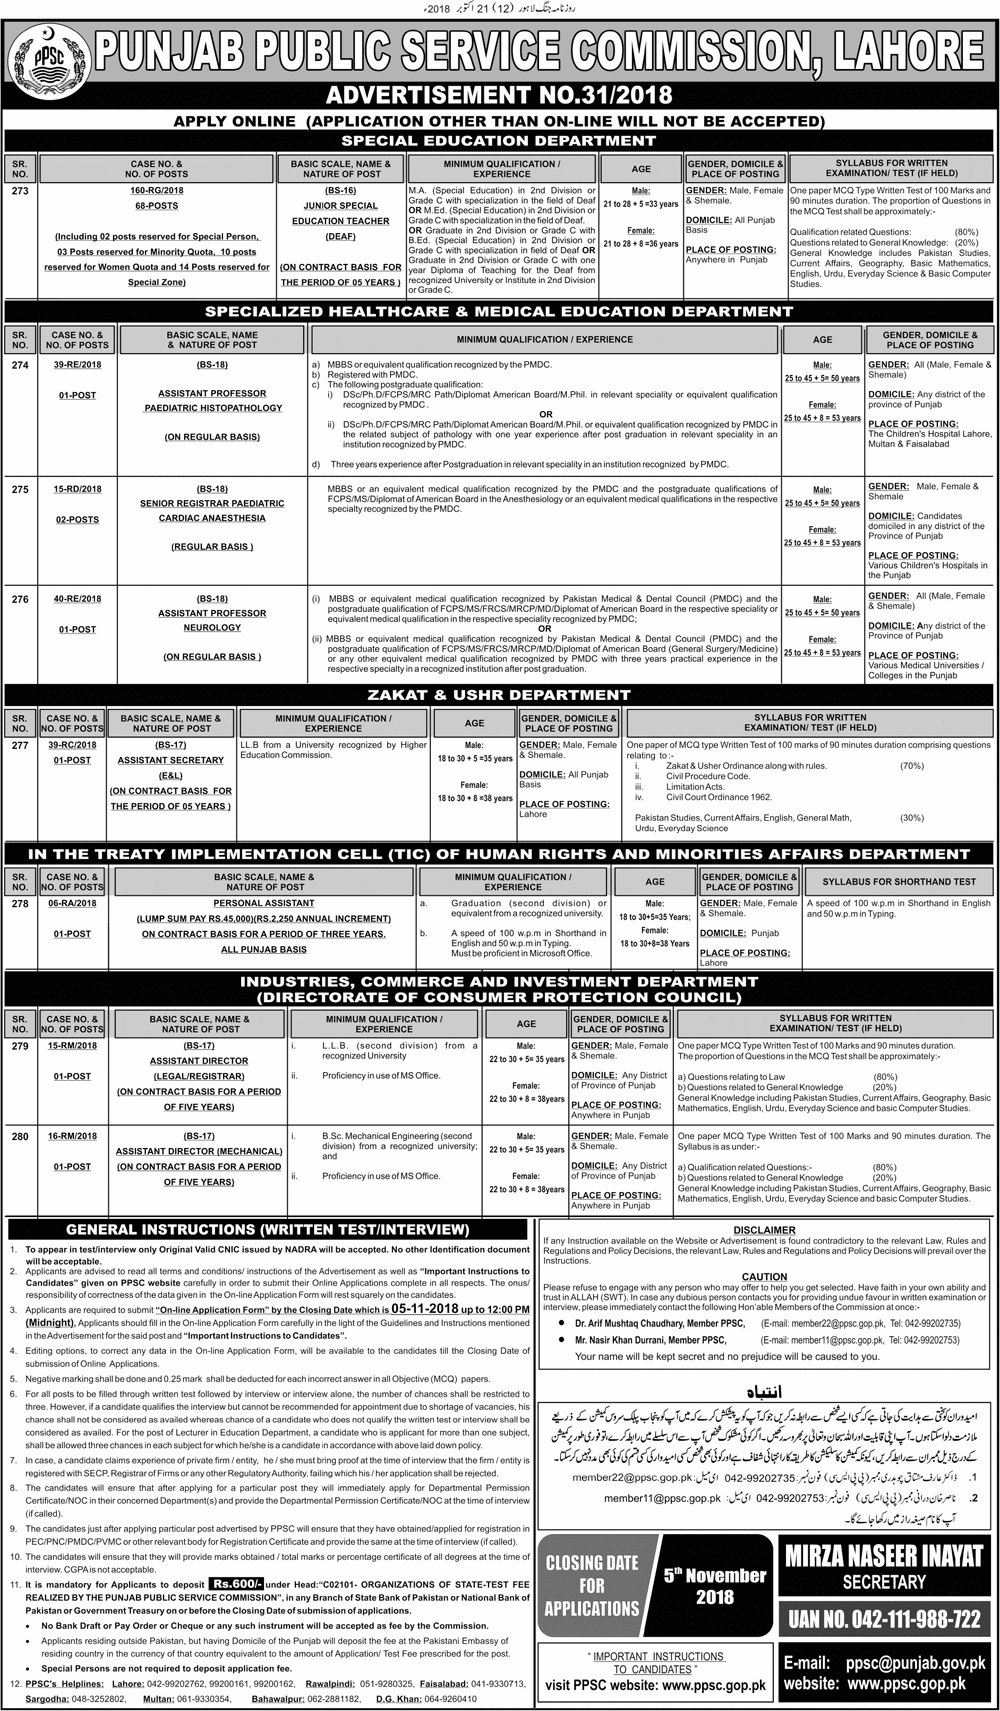 PPSC Latest Jobs 2019 Advertisement No 31 in Punjab on October, 2018 | PPSC